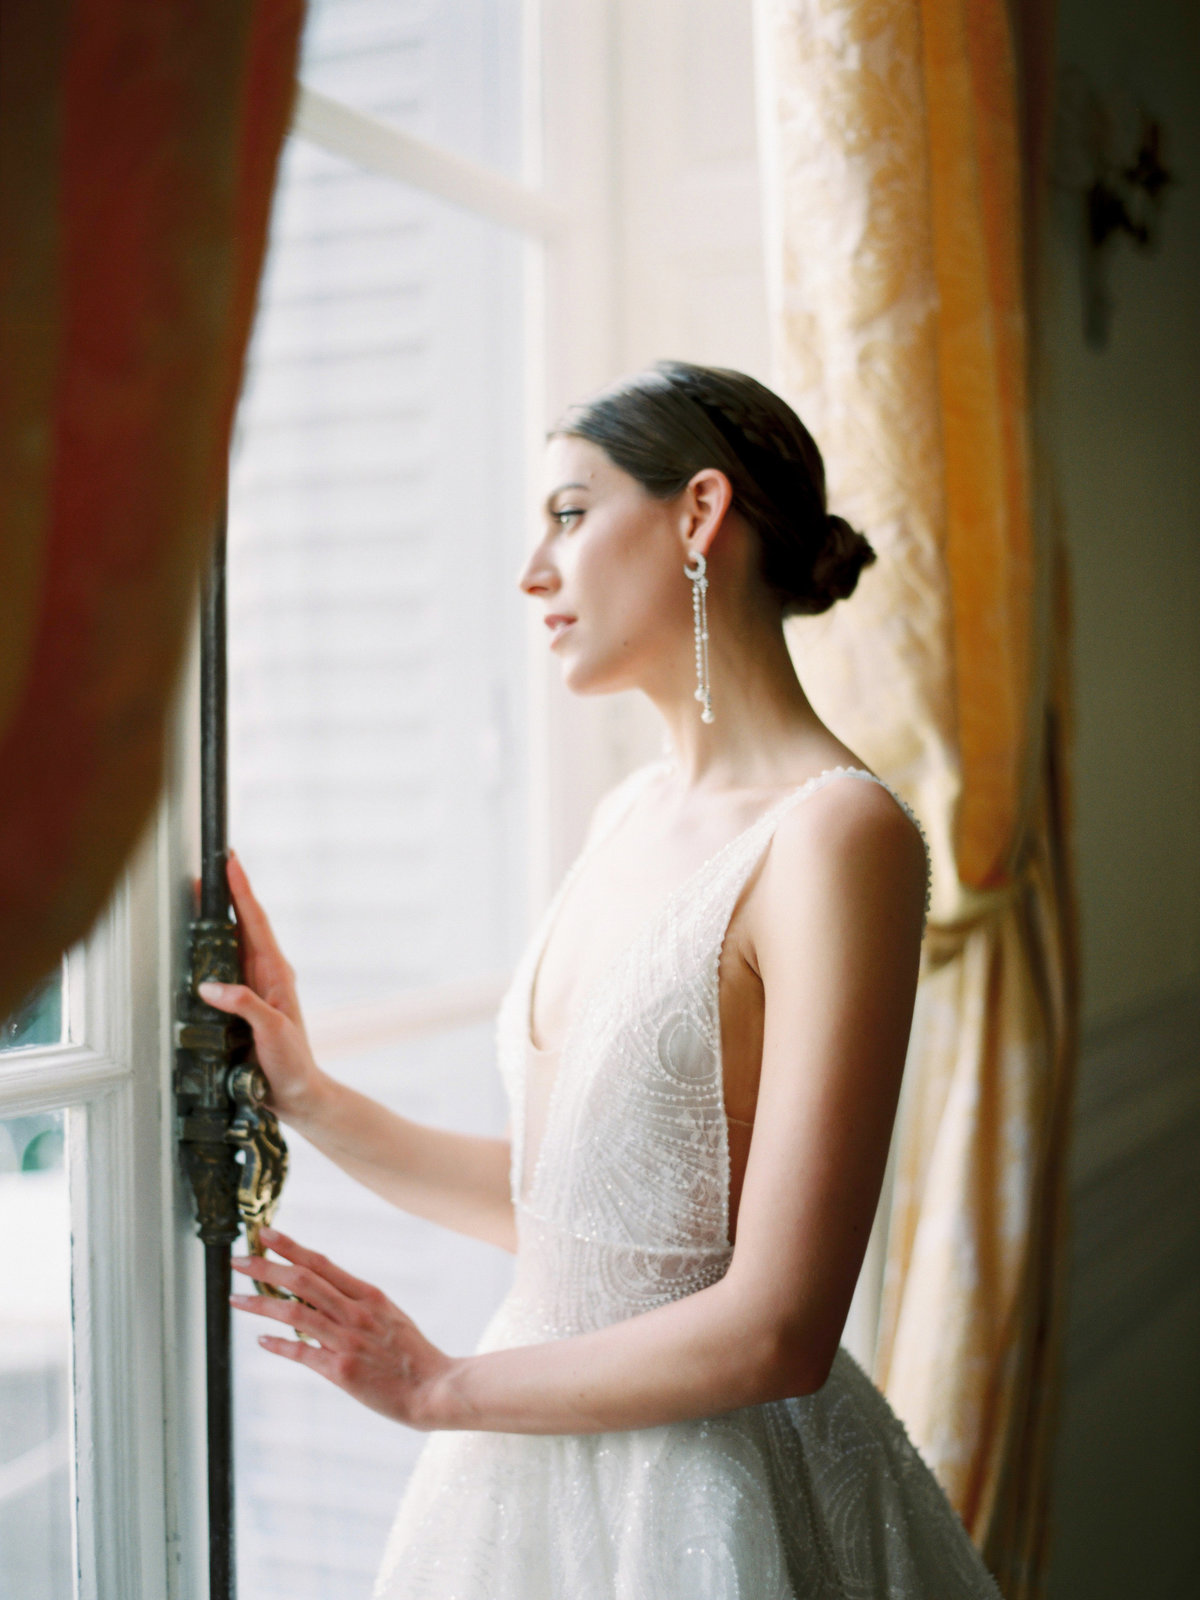 Luxurious french chateau wedding amelia soegijono0032